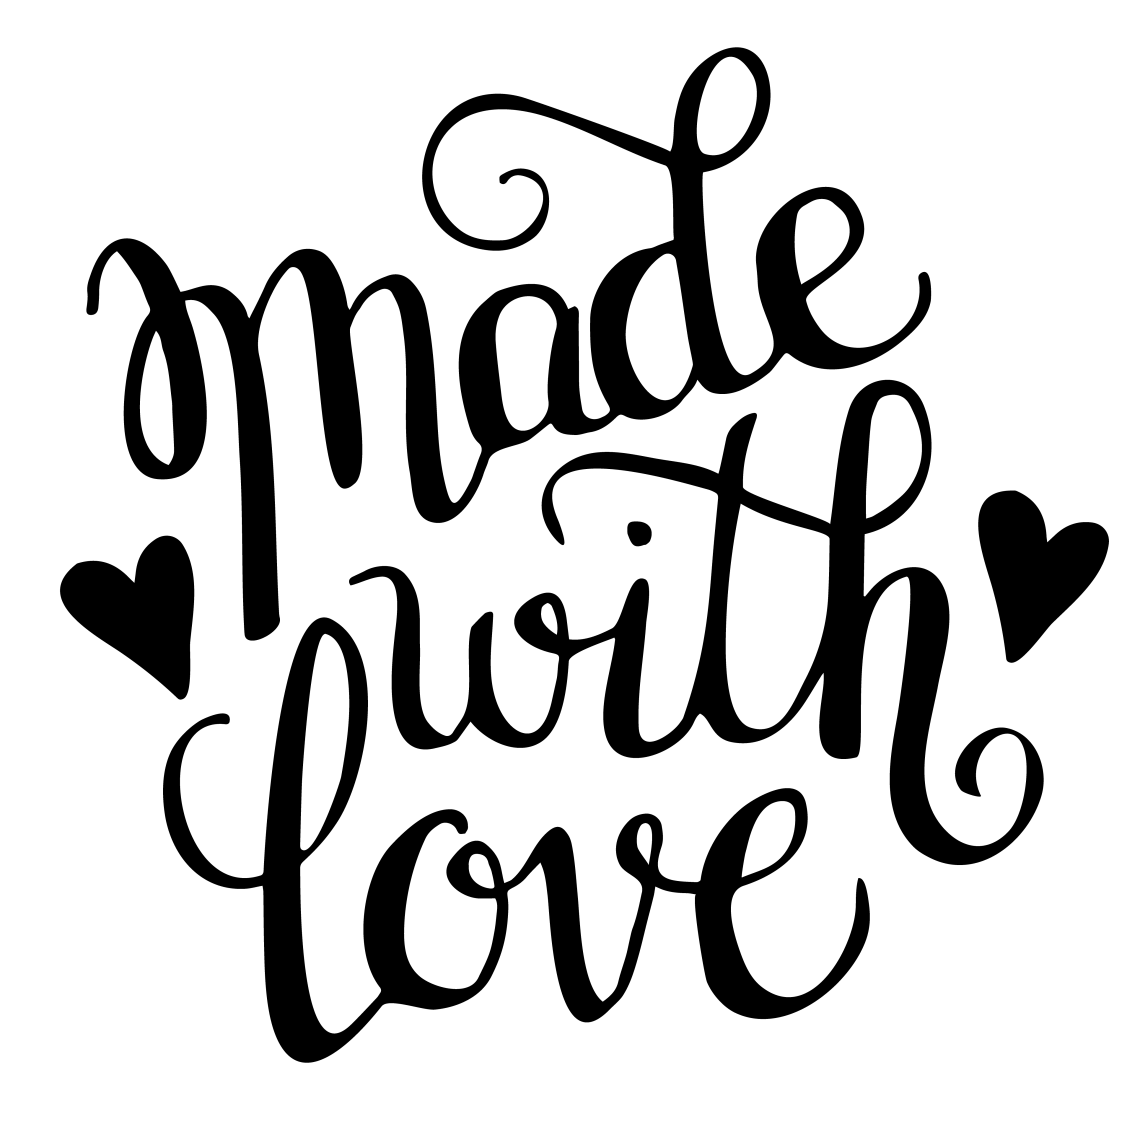 Download Hand Lettered Made with Love Cut File